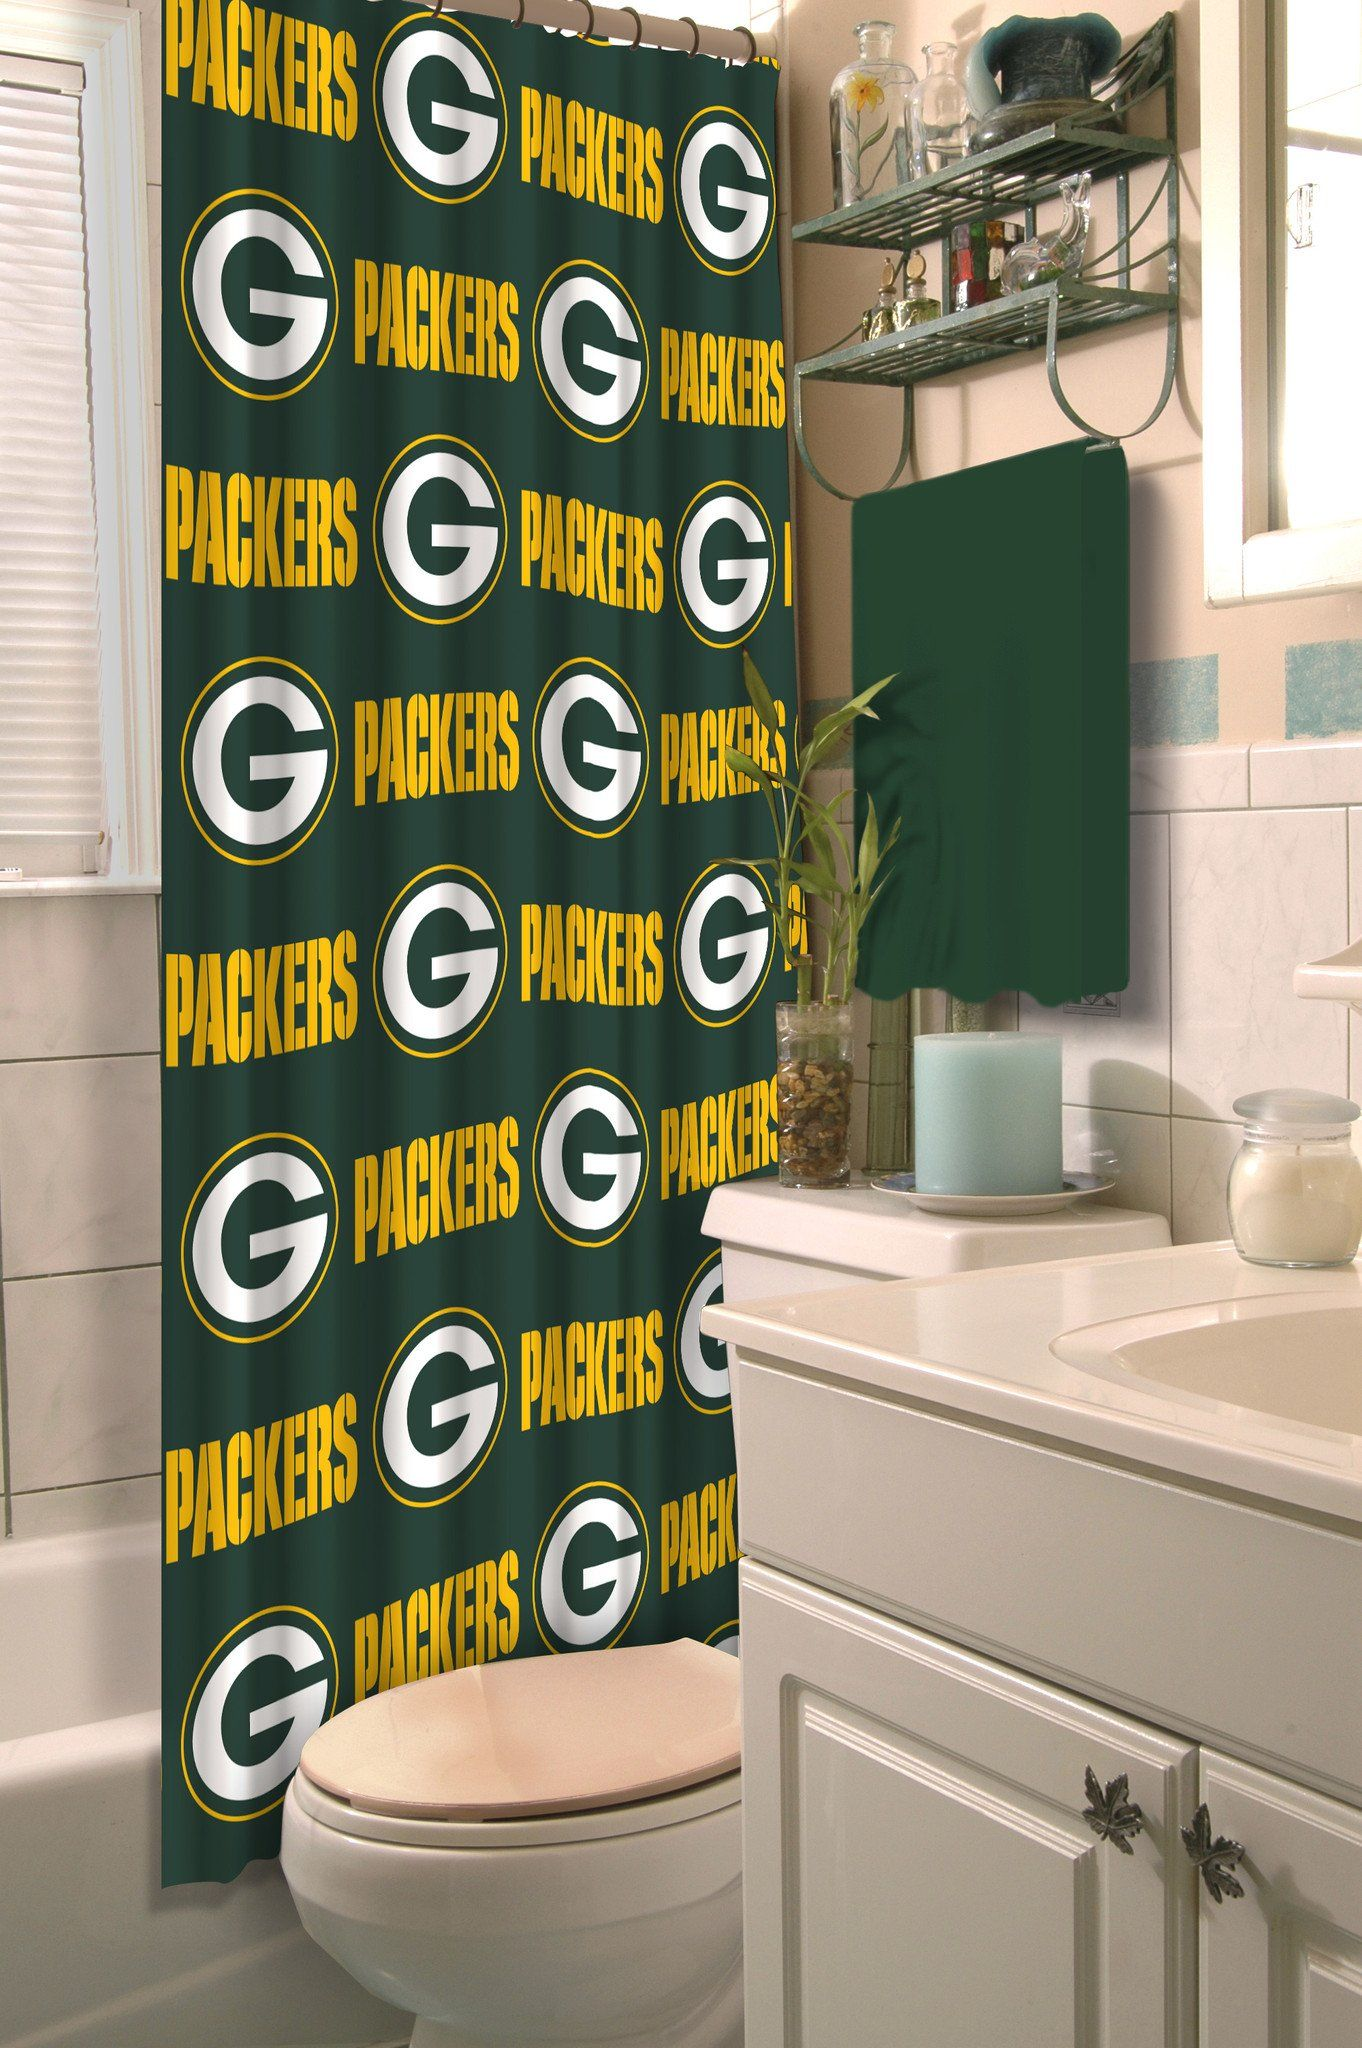 Packers Shower Curtain Shower Shower Curtain Nfl Packers